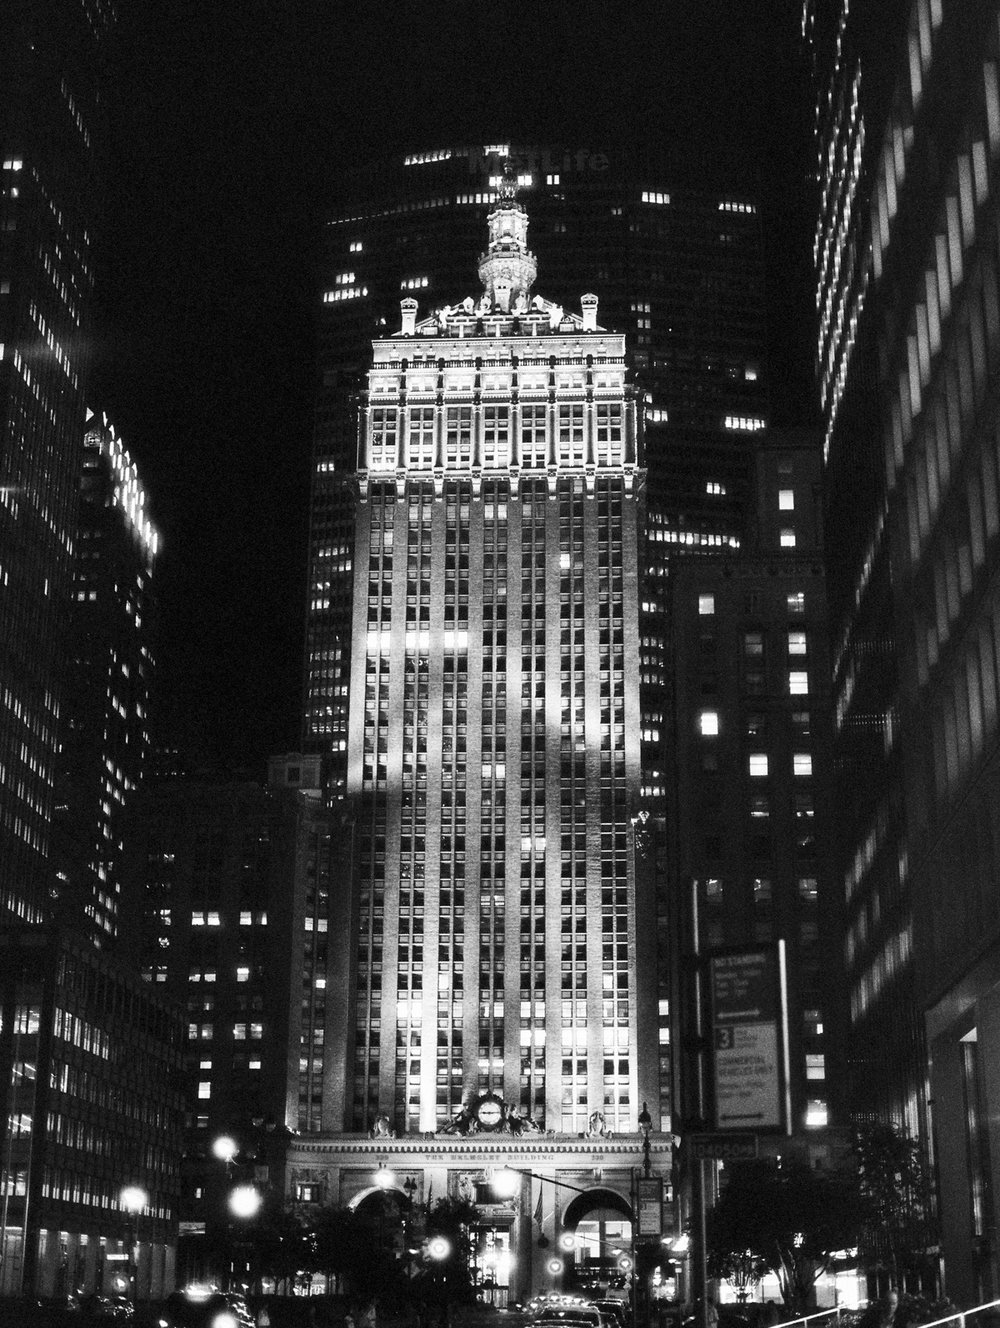 Black and white film at night. Ilford Delta 3200